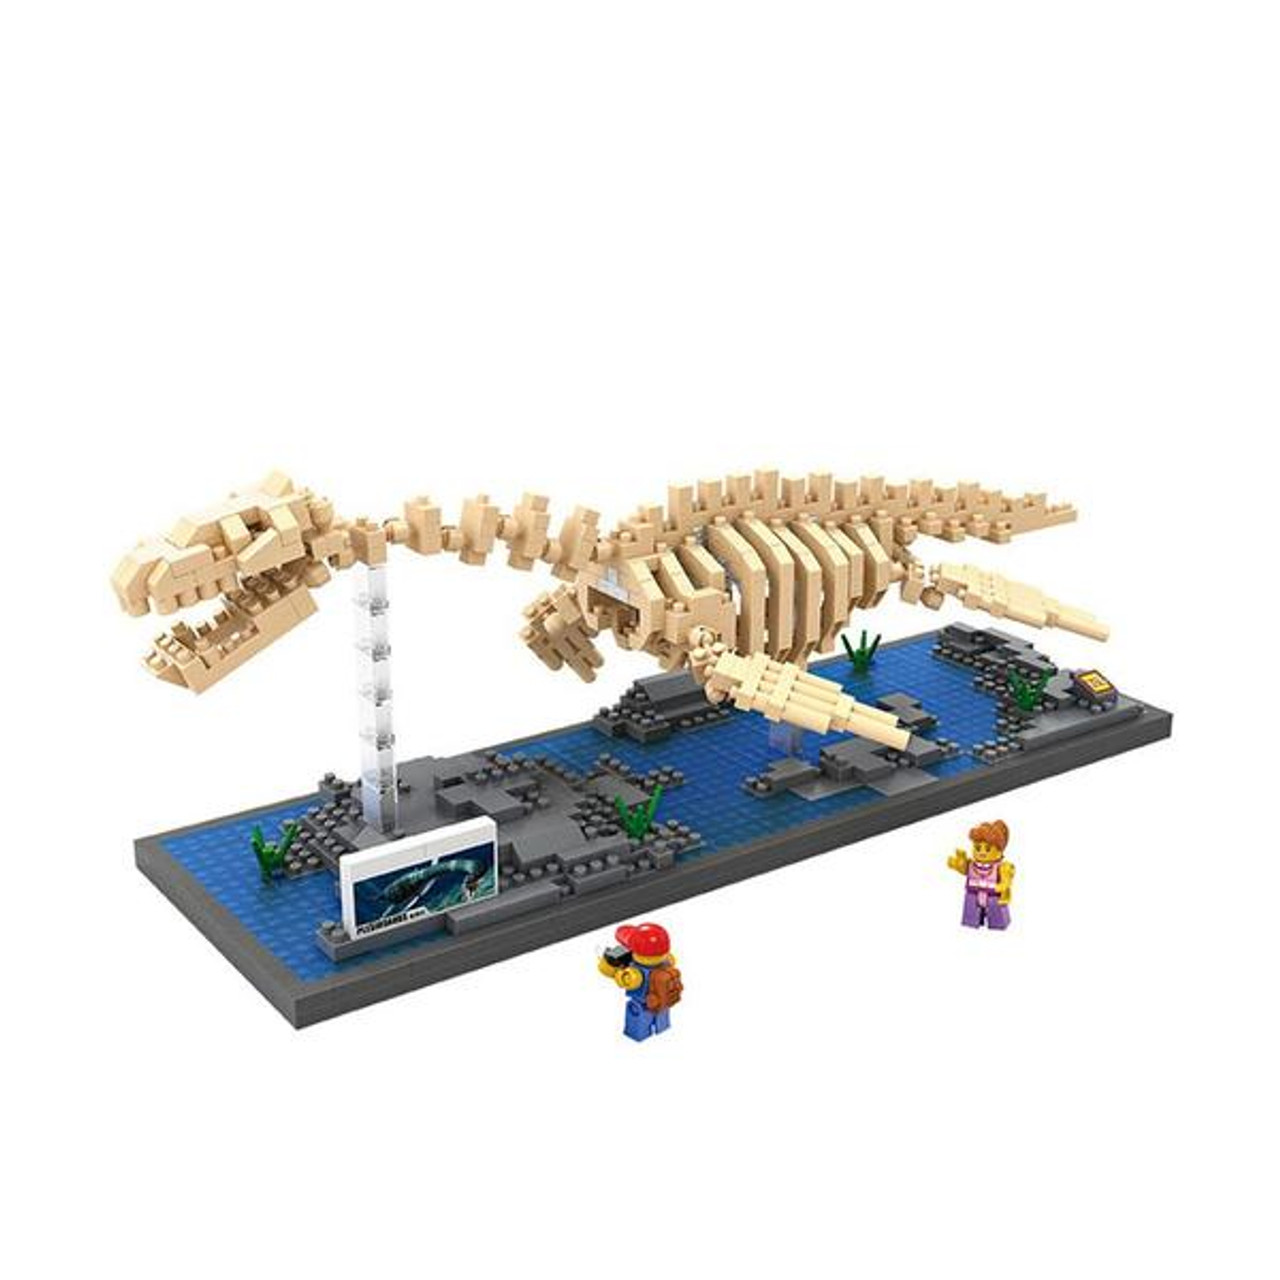 Plesiosaur bricks model